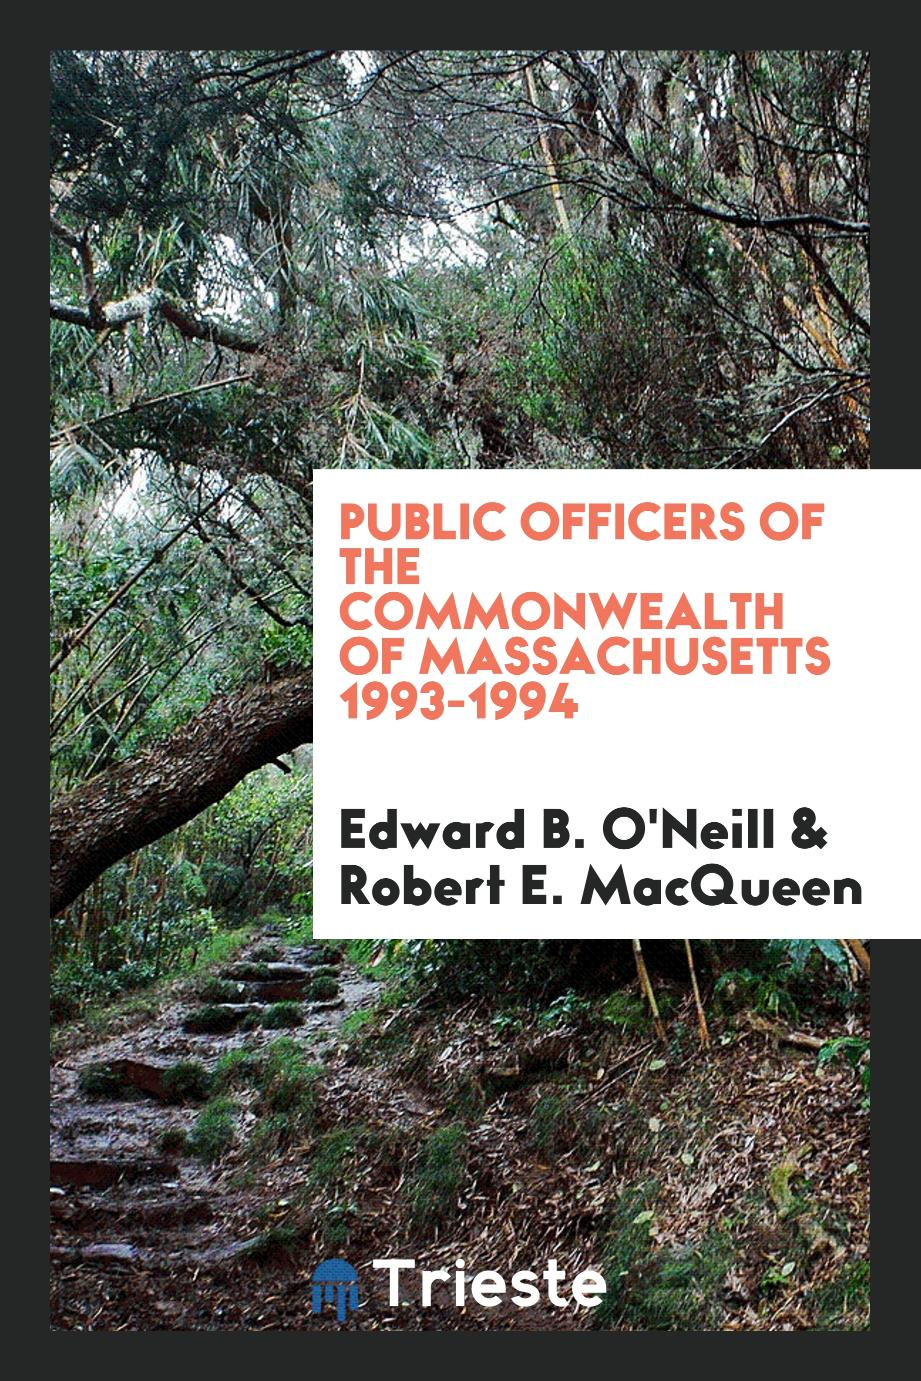 Public officers of the Commonwealth of Massachusetts 1993-1994